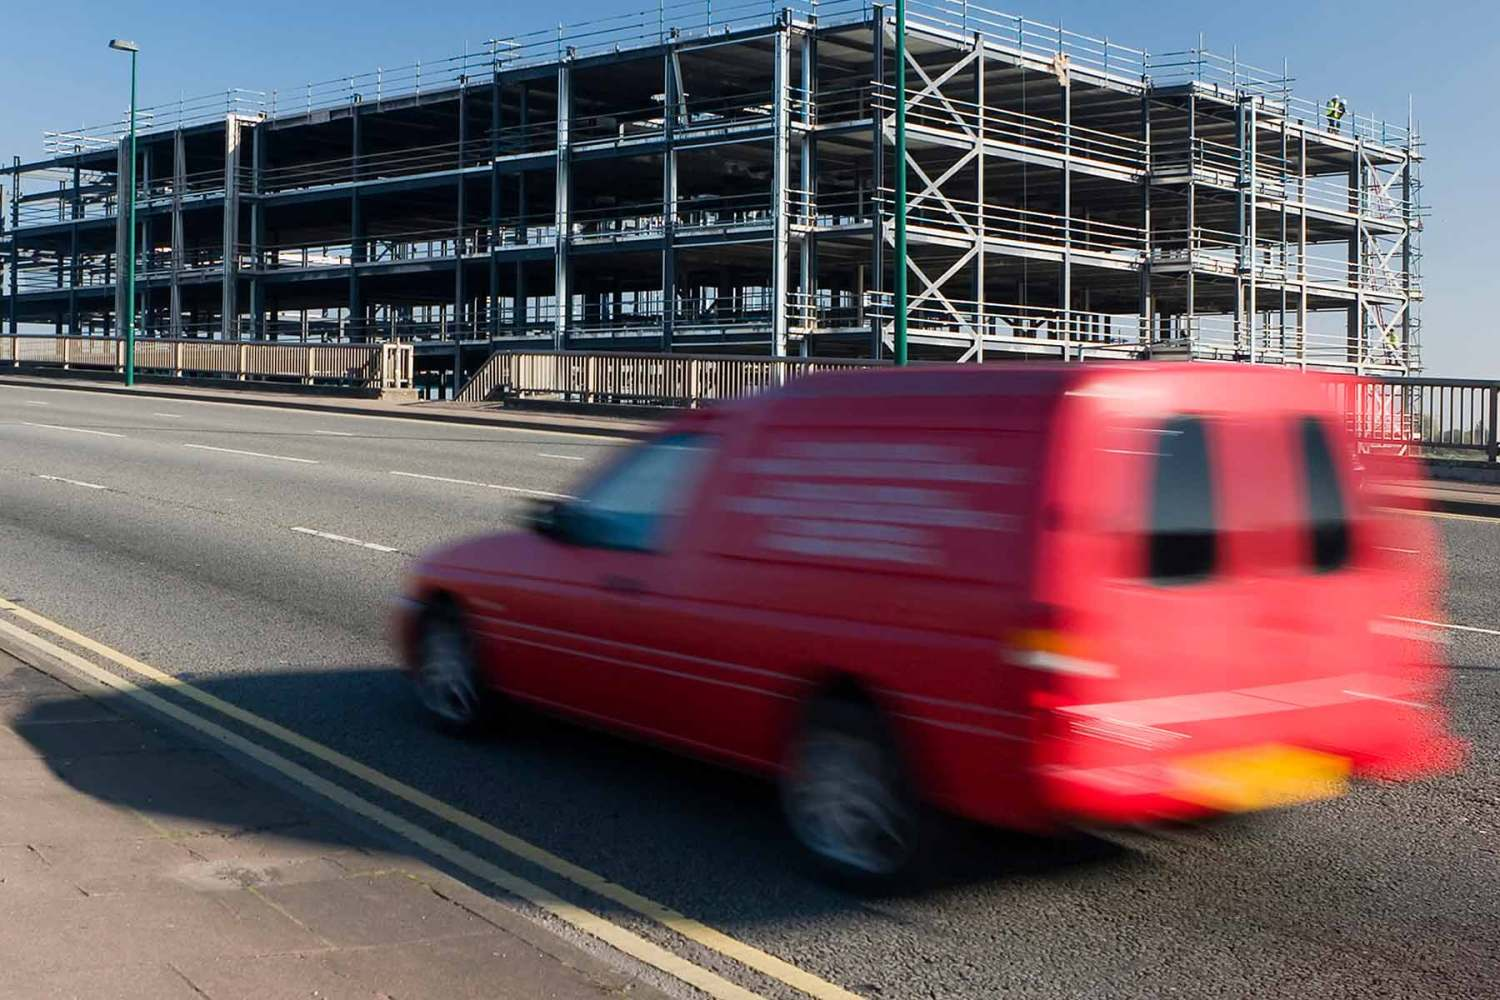 Van safety needs to be addressed, warns SMMT